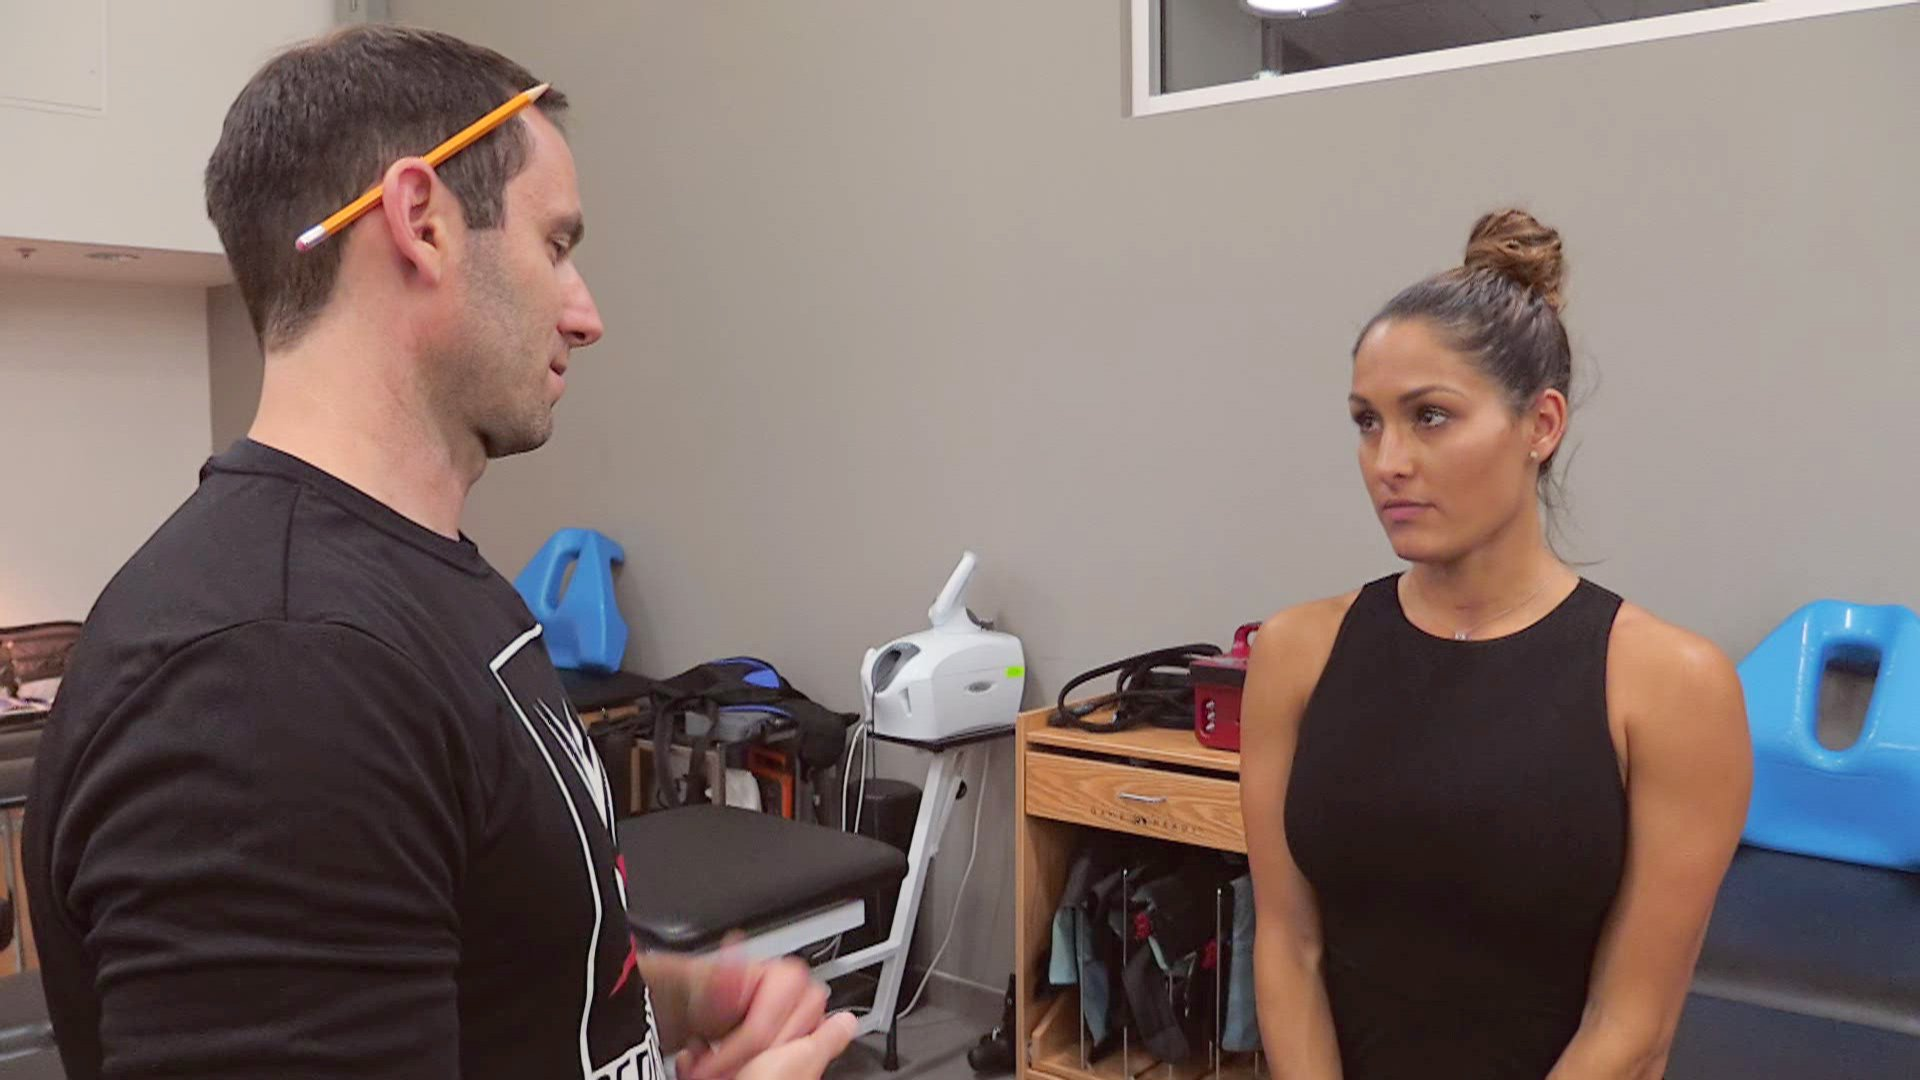 Nikki Bella is informed it's probably best if she retires the Rack Attack due to the pressure it puts on her neck.